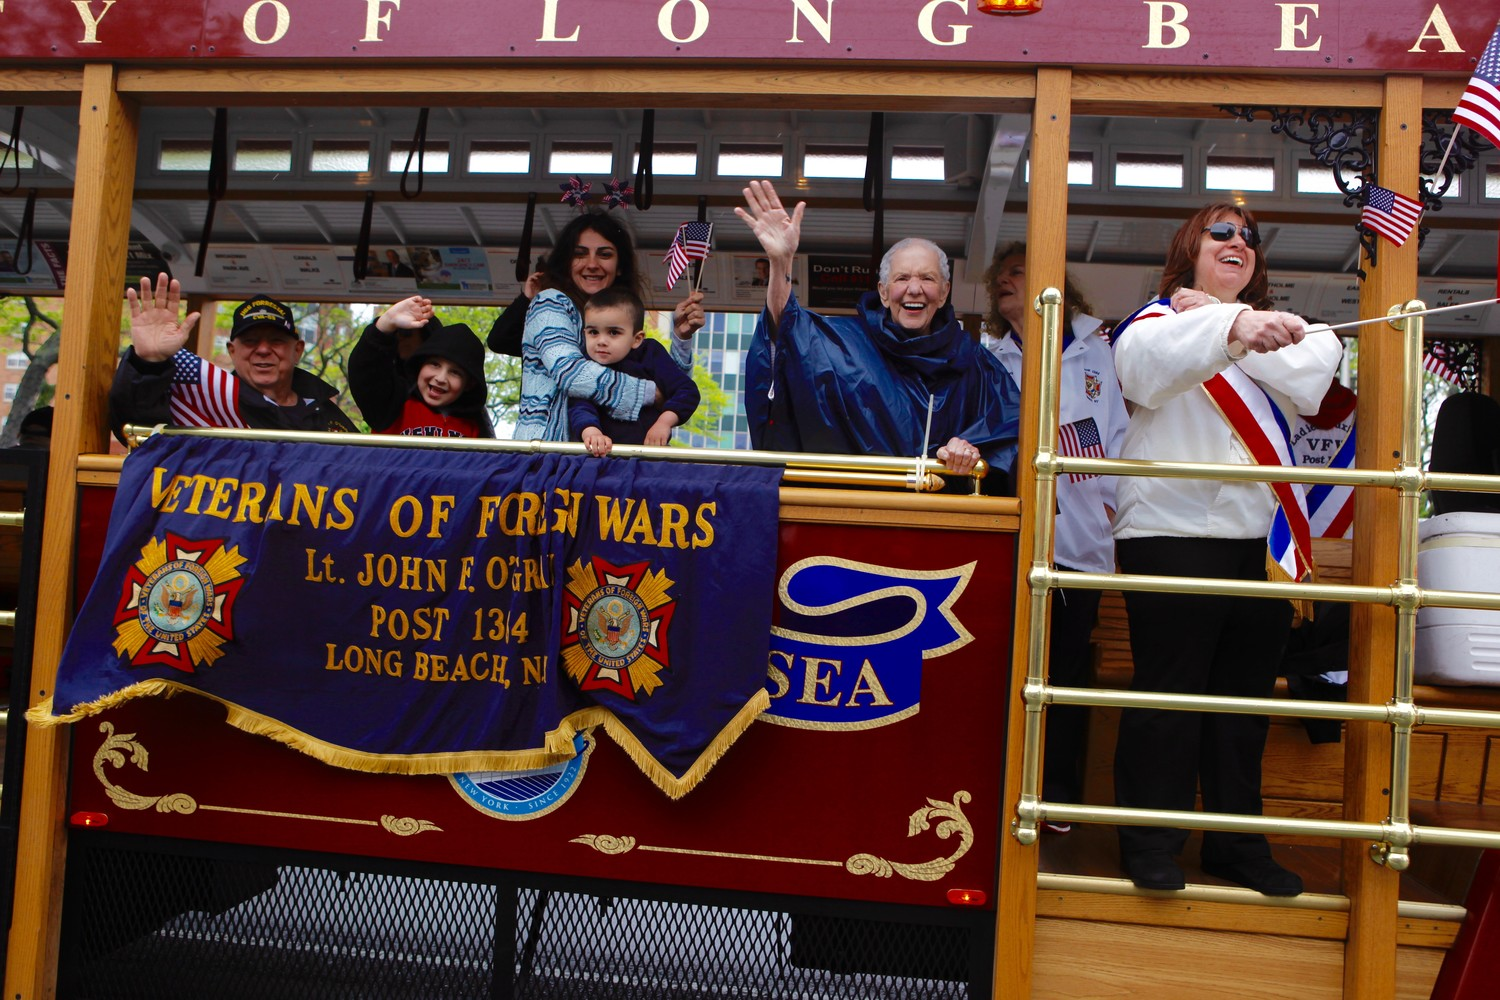 Members of the Long Beach Veterans of Foreign Wars Post 1384 and residents waved to onlookers from the trolley during last year's parade.